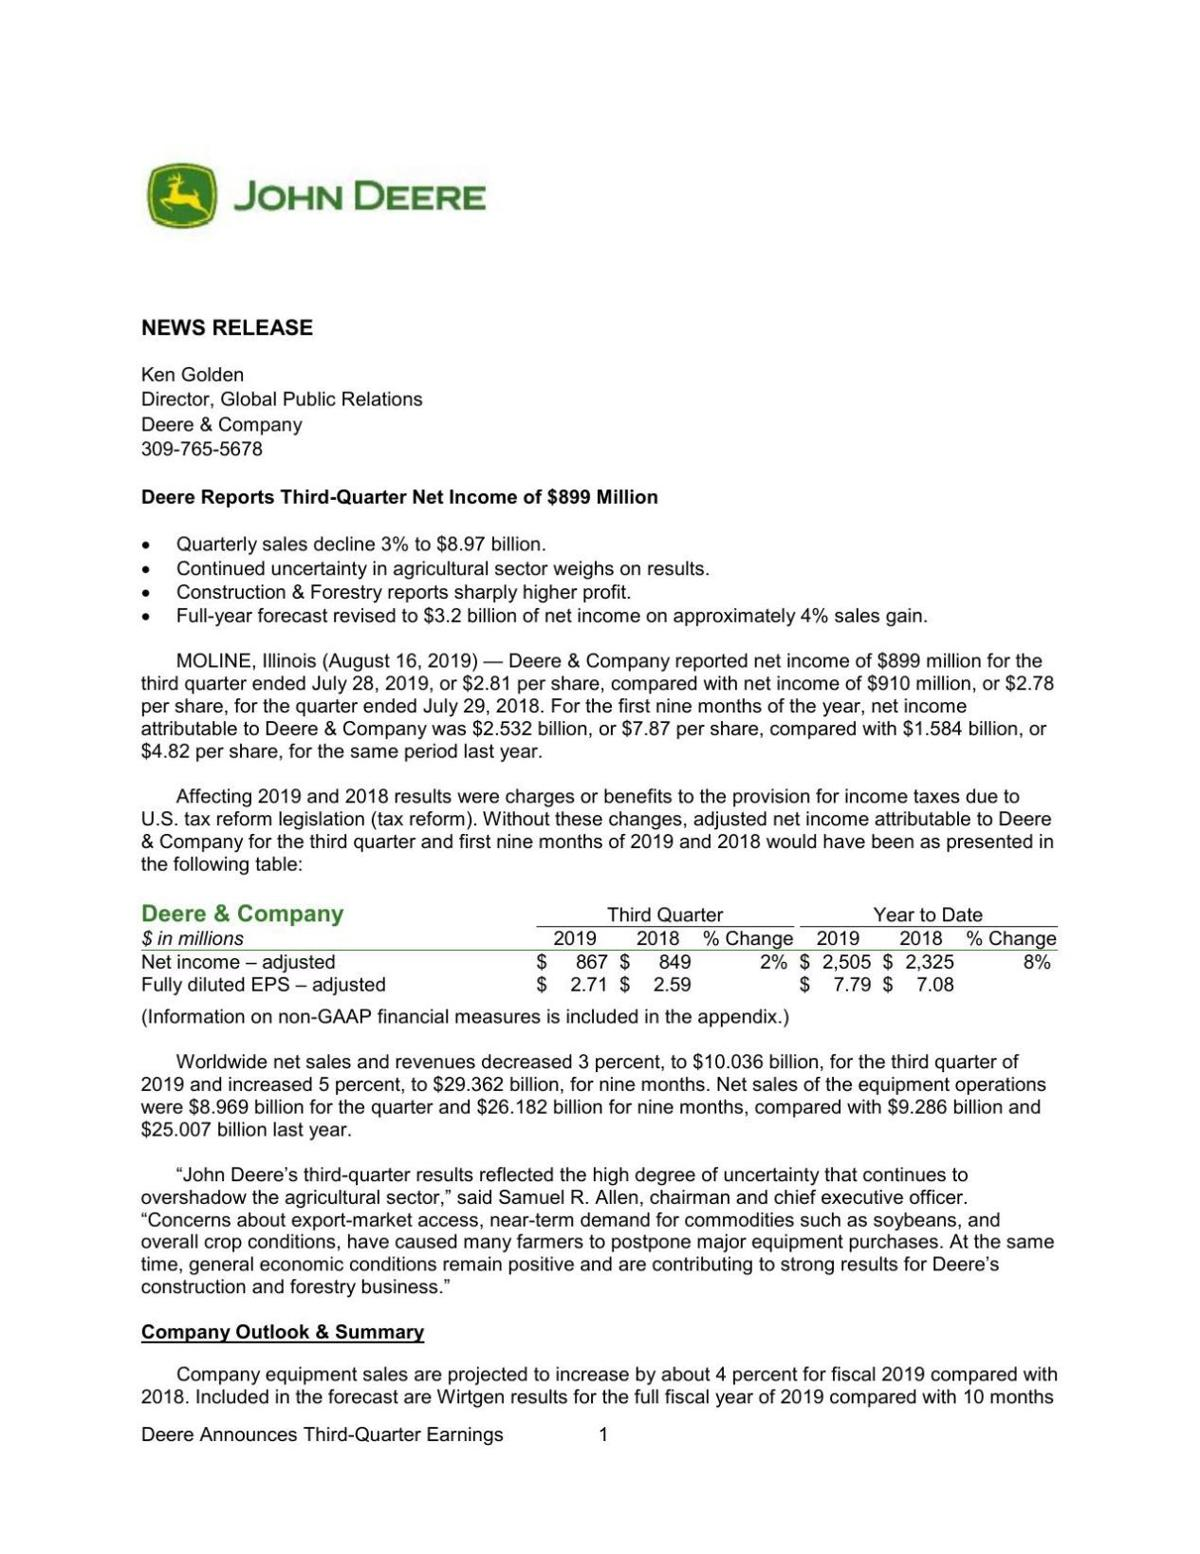 Deere Q3 earnings